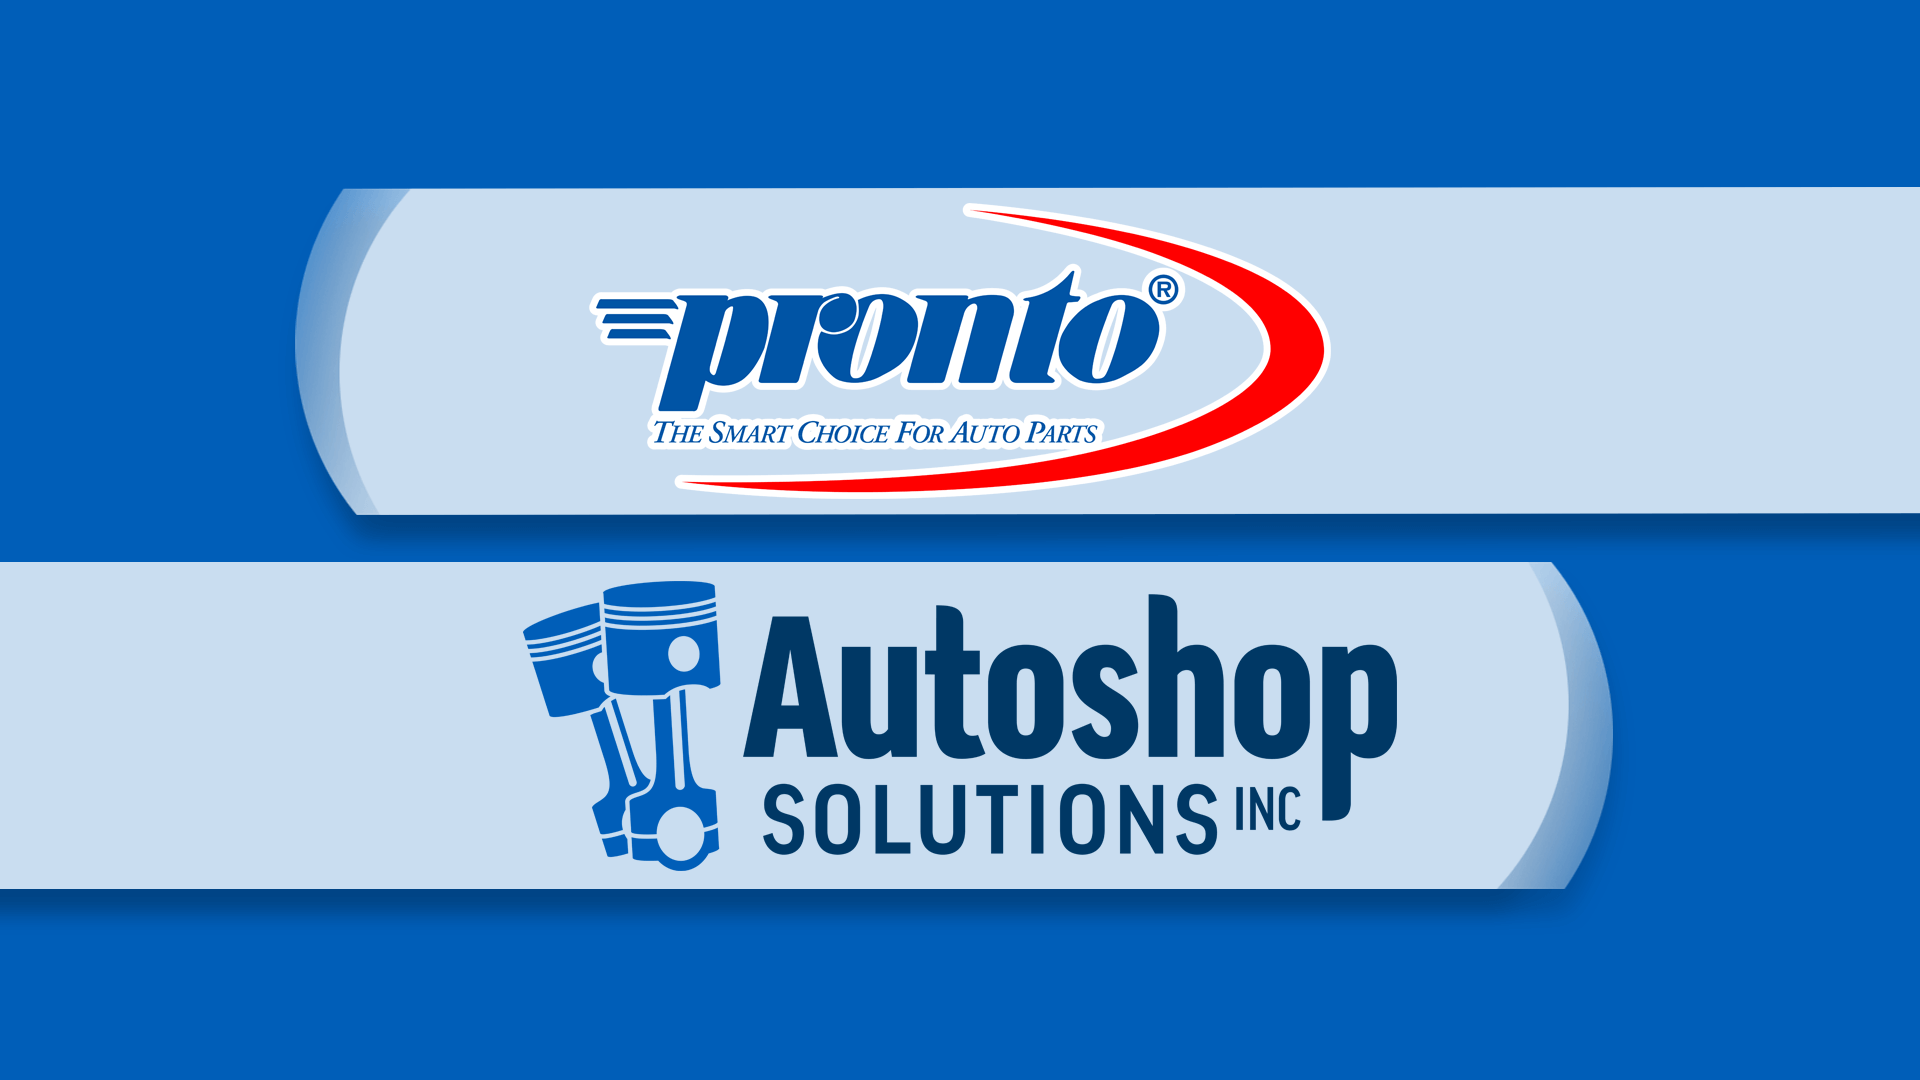 Pronto partnership with Autoshop Solutions